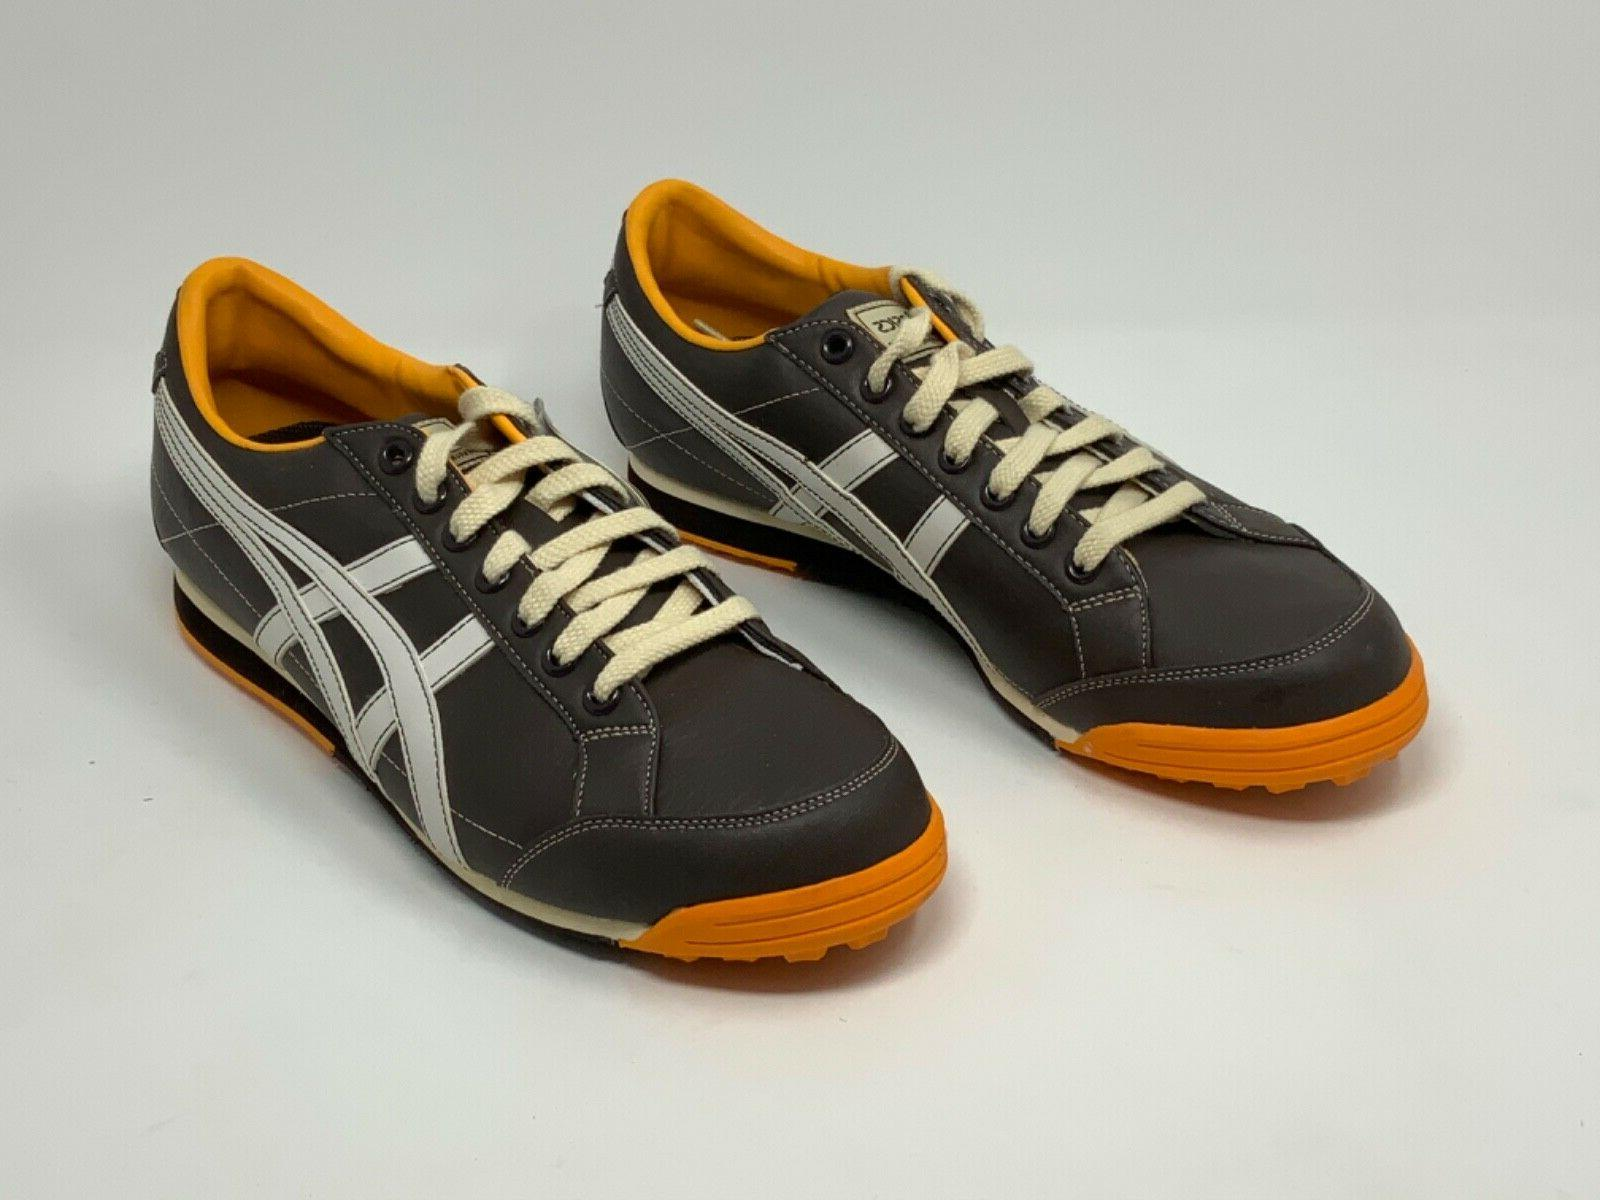 new mens matchplay classic golf shoe size